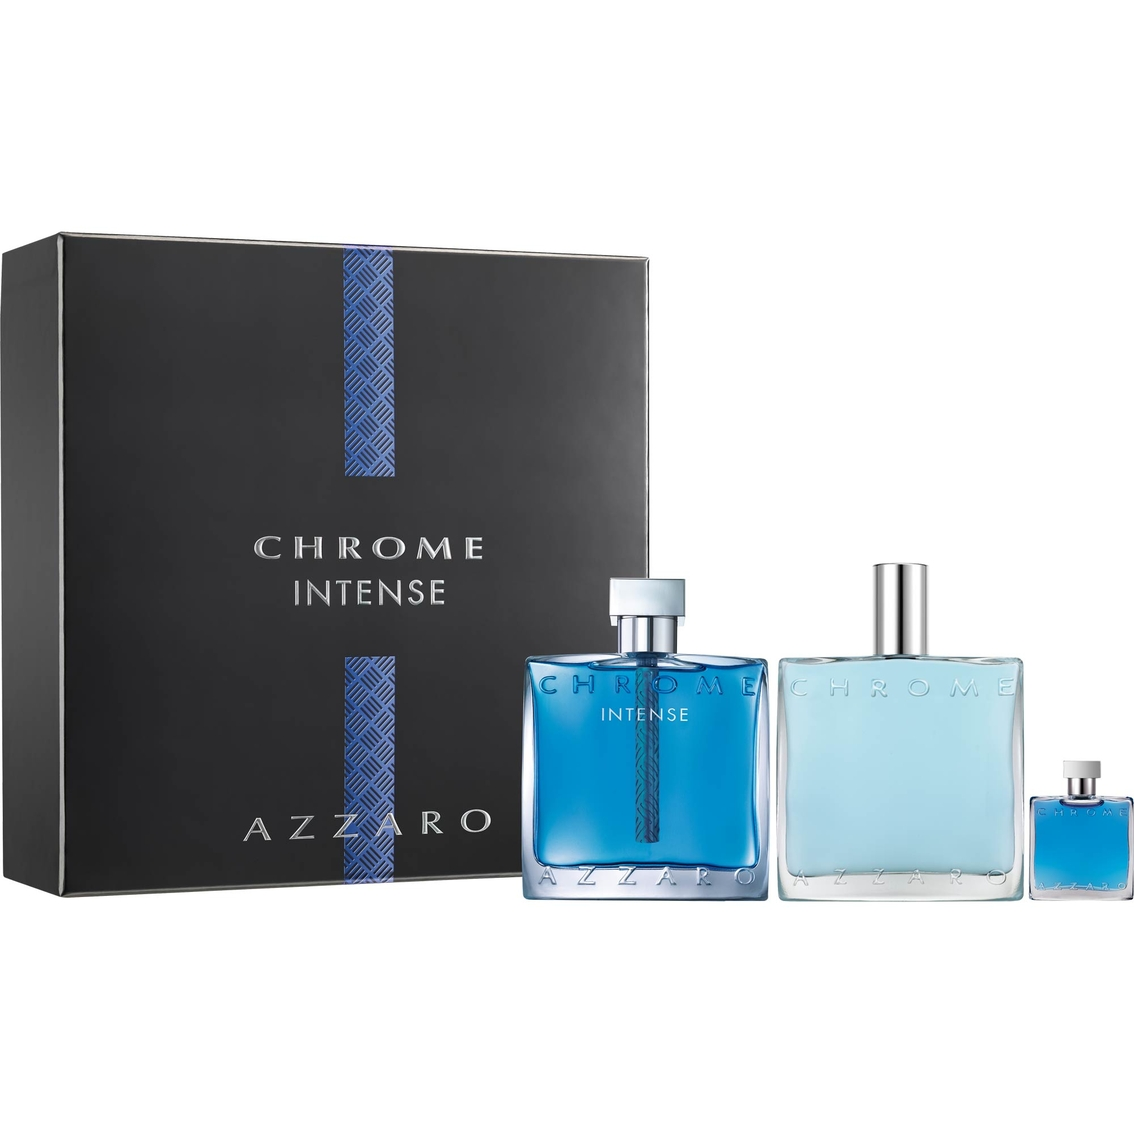 AZZARO CHROME INTENSE 3PCS GIFT SETS FOR MEN Image